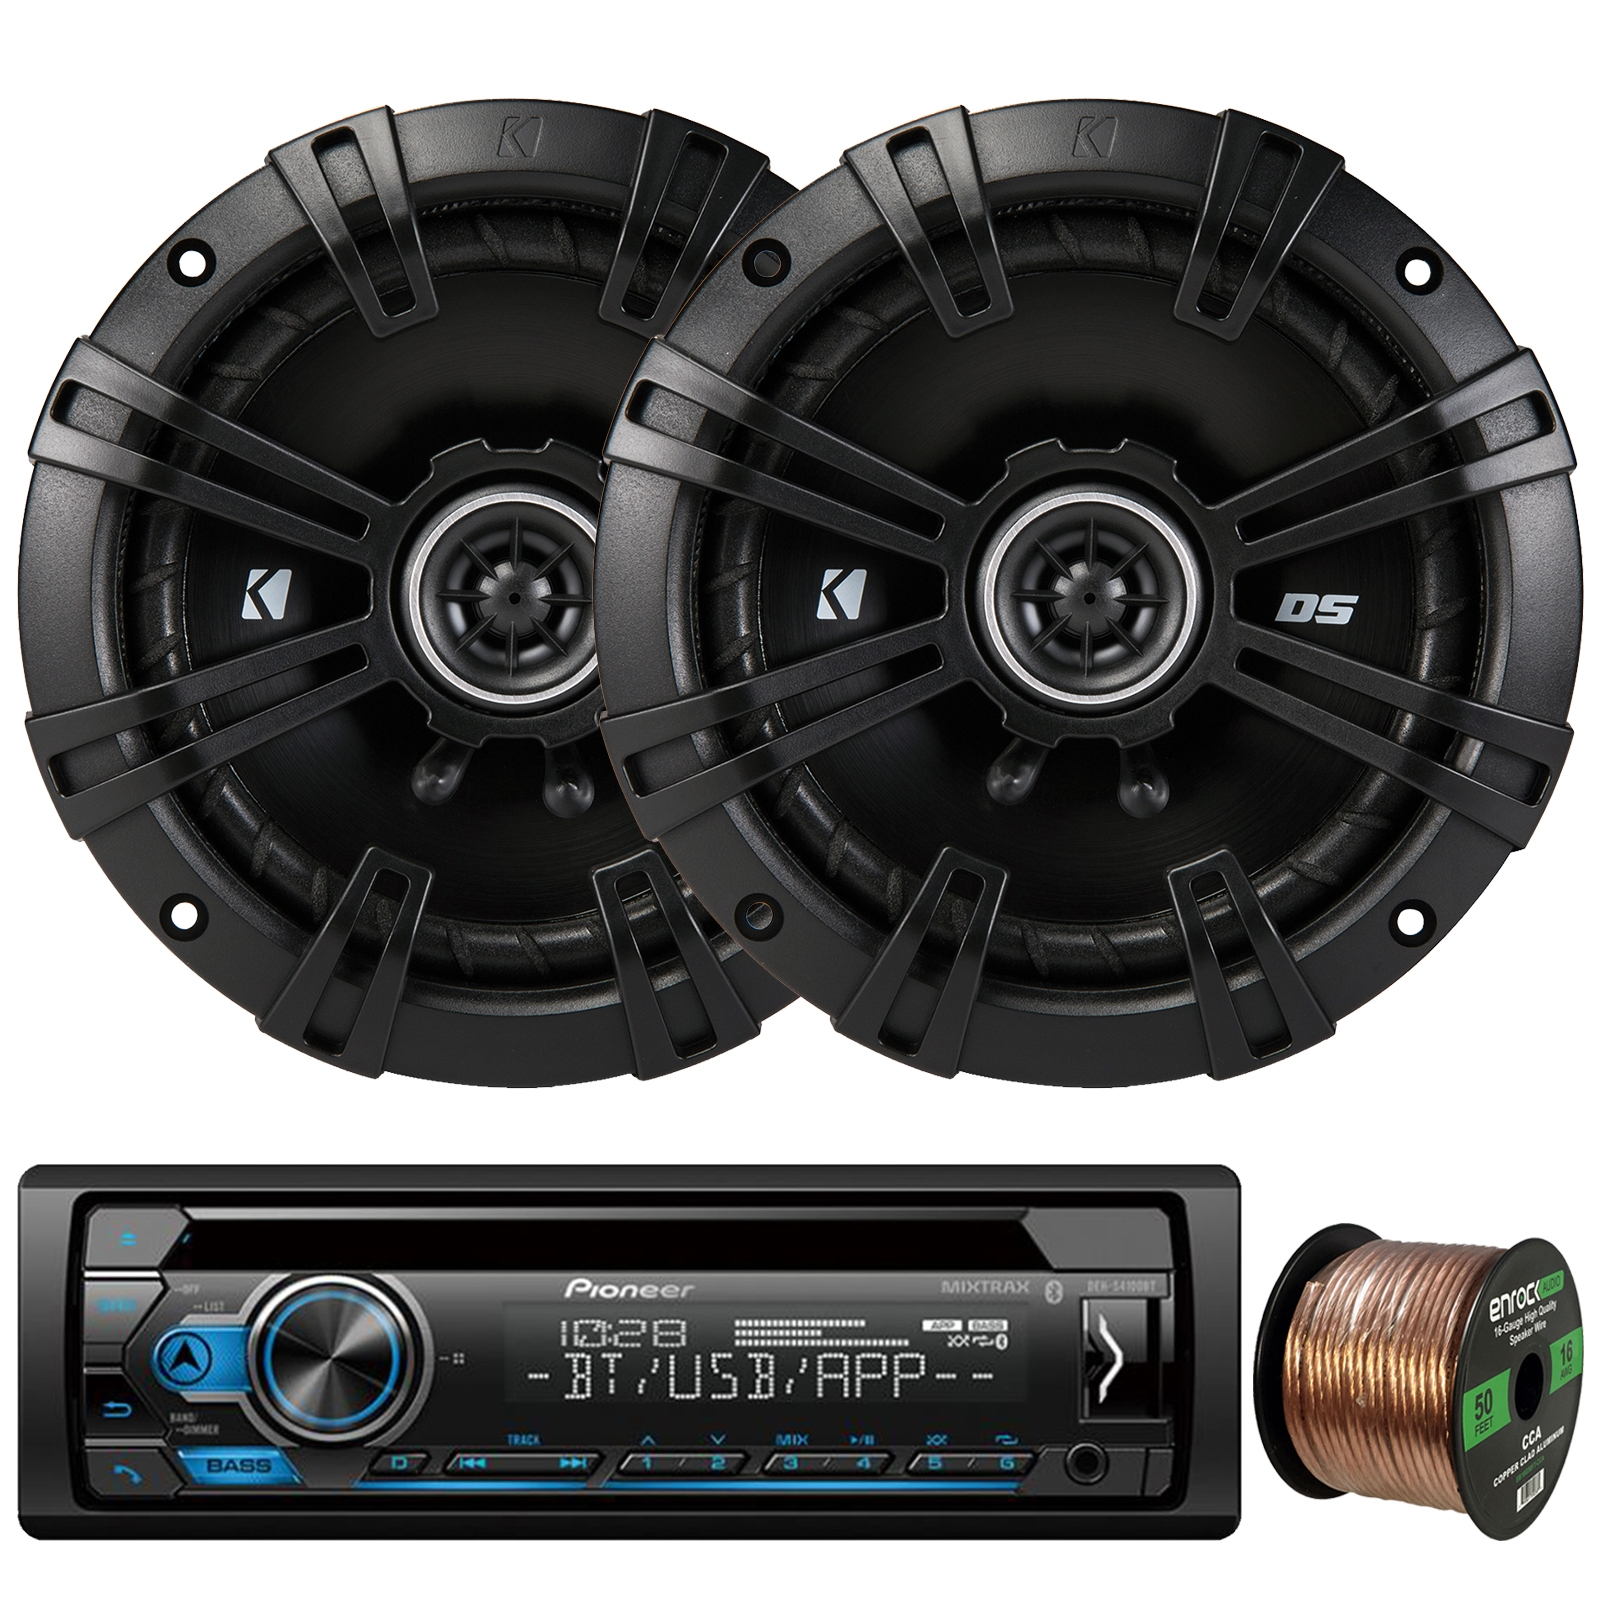 "Pioneer DEH-S4100BT In-Dash Single-DIN CD Player Bluetooth Receiver, 2 x Kicker DS-Series 43DSC6504 6.5"" 240W 2-Way 4-Ohm Car Audio Coaxial Speakers, 16-Gauge 50Ft. Speaker Wire"